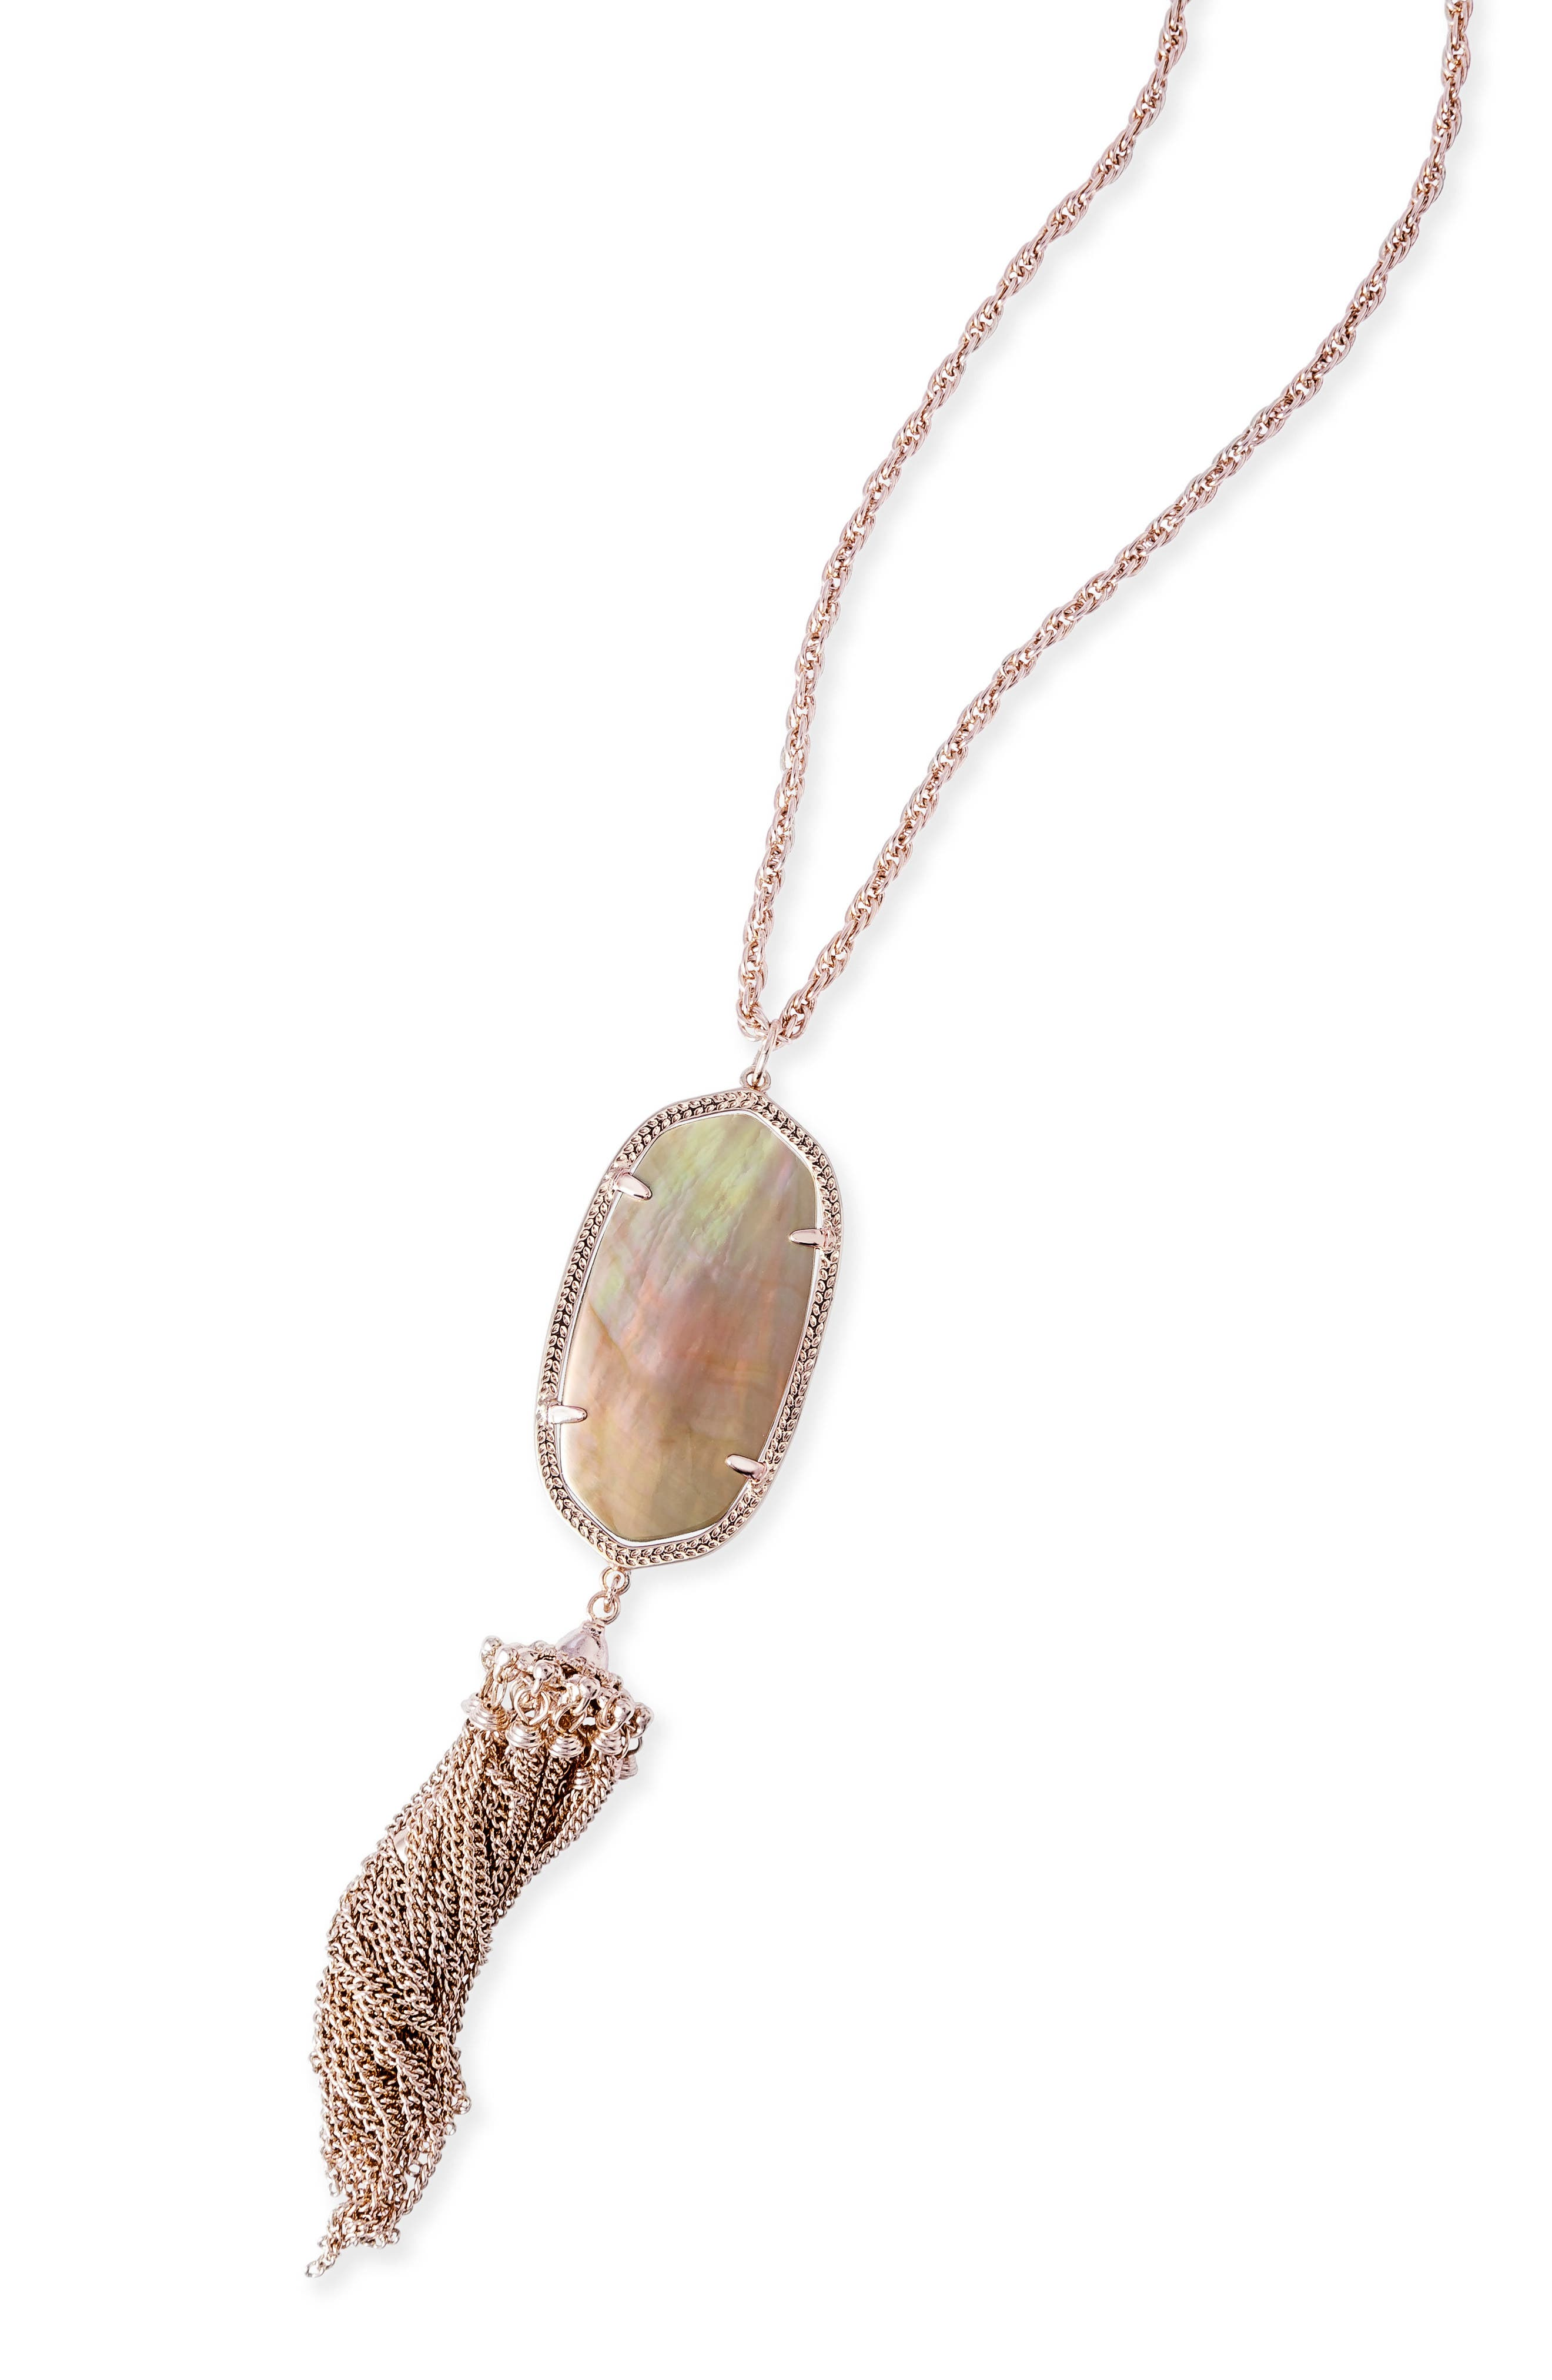 Rayne Stone Tassel Pendant Necklace,                             Main thumbnail 1, color,                             Brown Mop/ Rose Gold